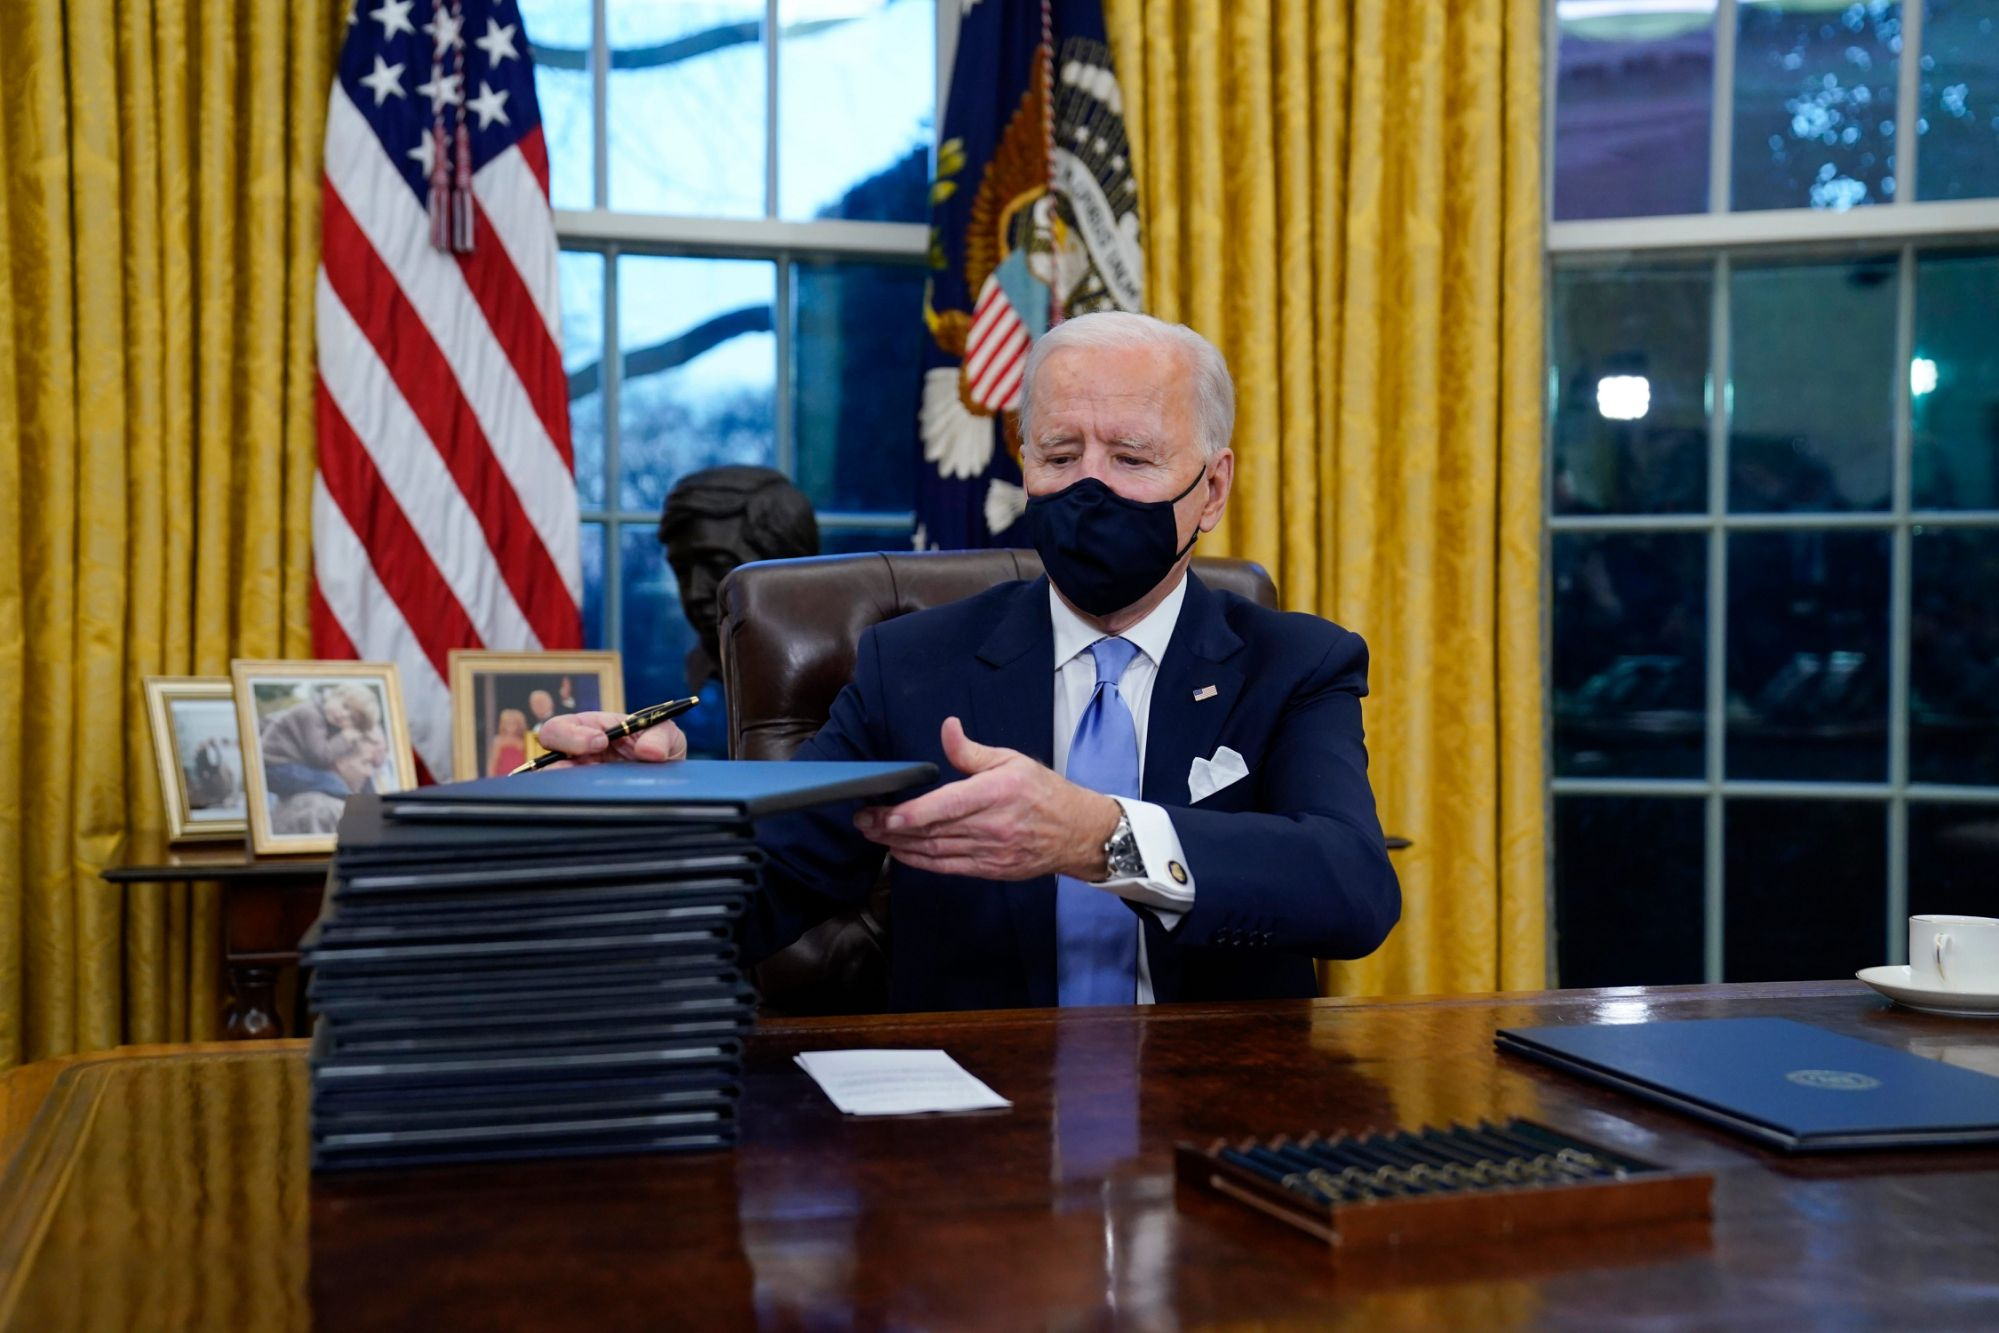 daily-routine-and-a-script-are-back-in-the-biden-white-house,-but-how-long-can-it-last?